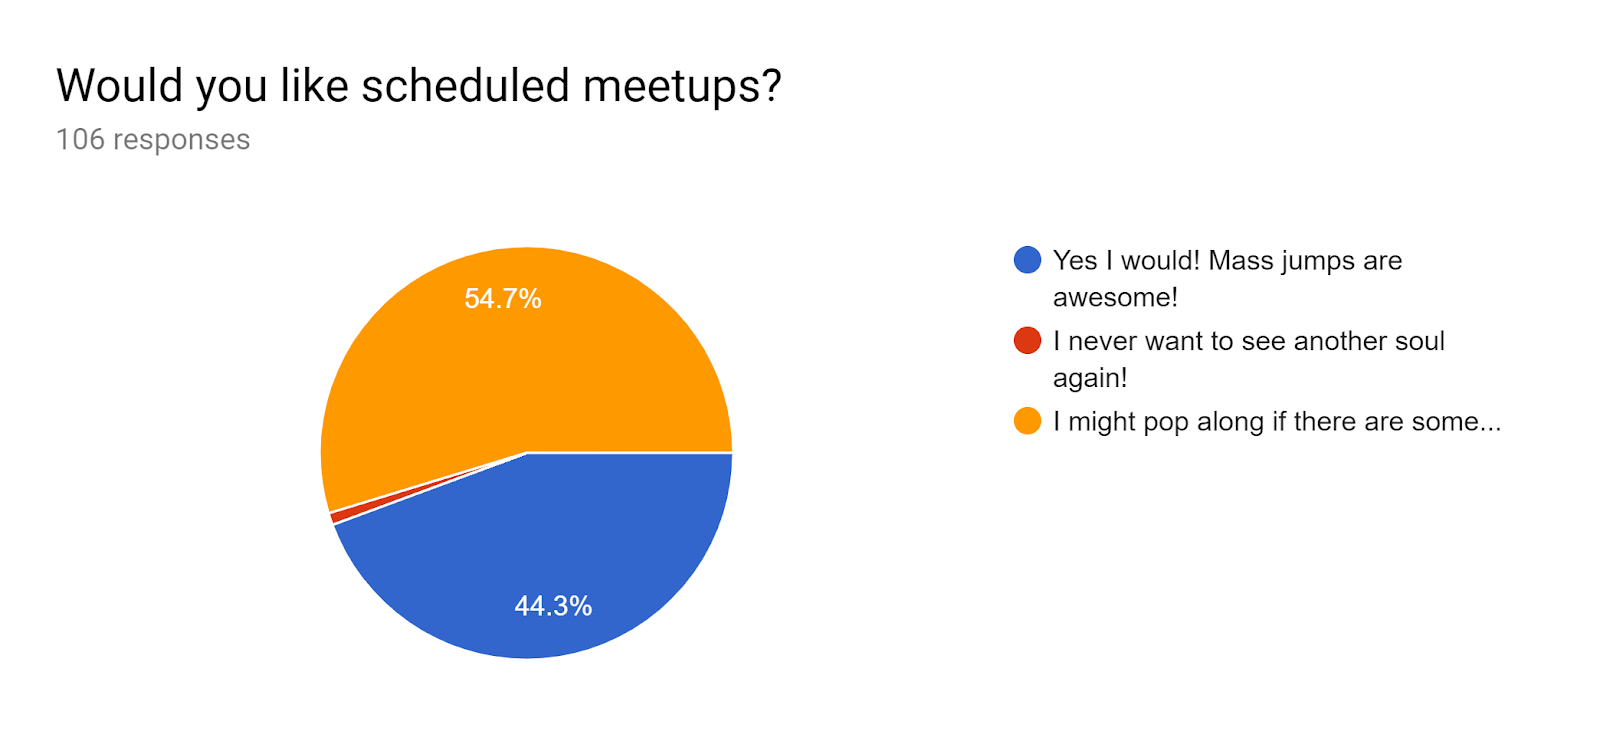 Forms response chart. Question title: Would you like scheduled meetups?. Number of responses: 106 responses.